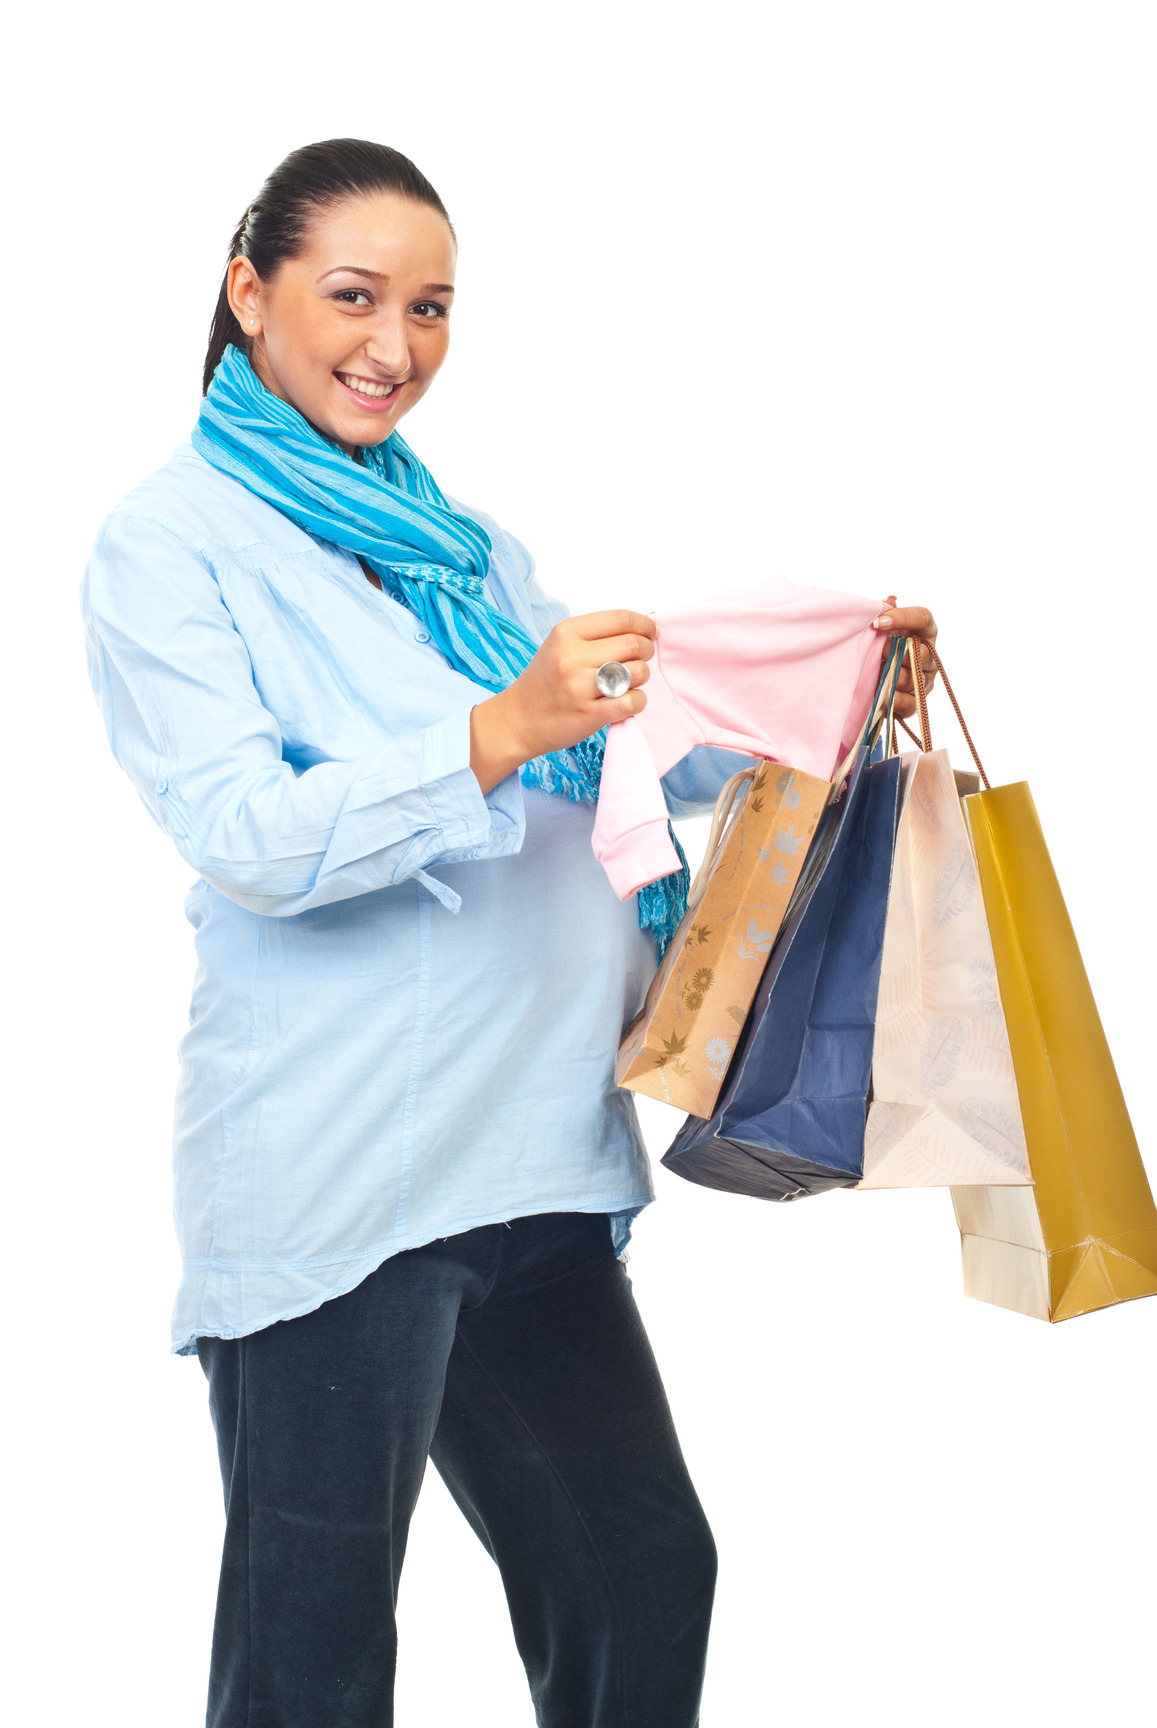 pregnant woman holding shopping bags and baby items